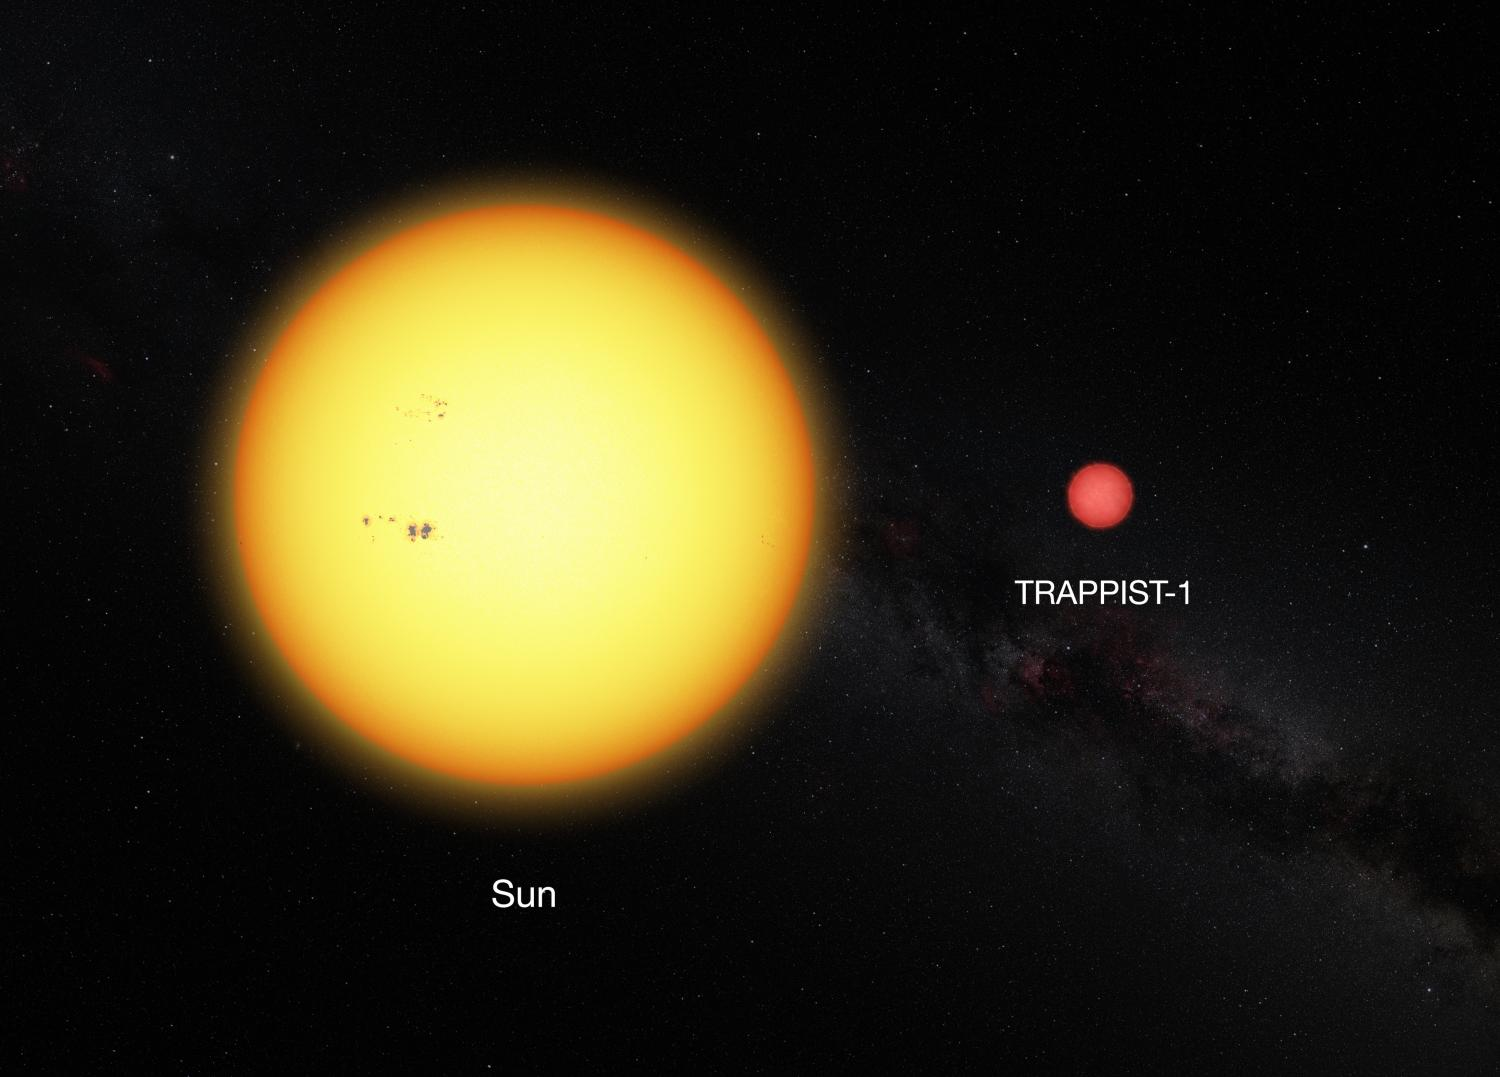 Neighboring exoplanets may hold water, study finds